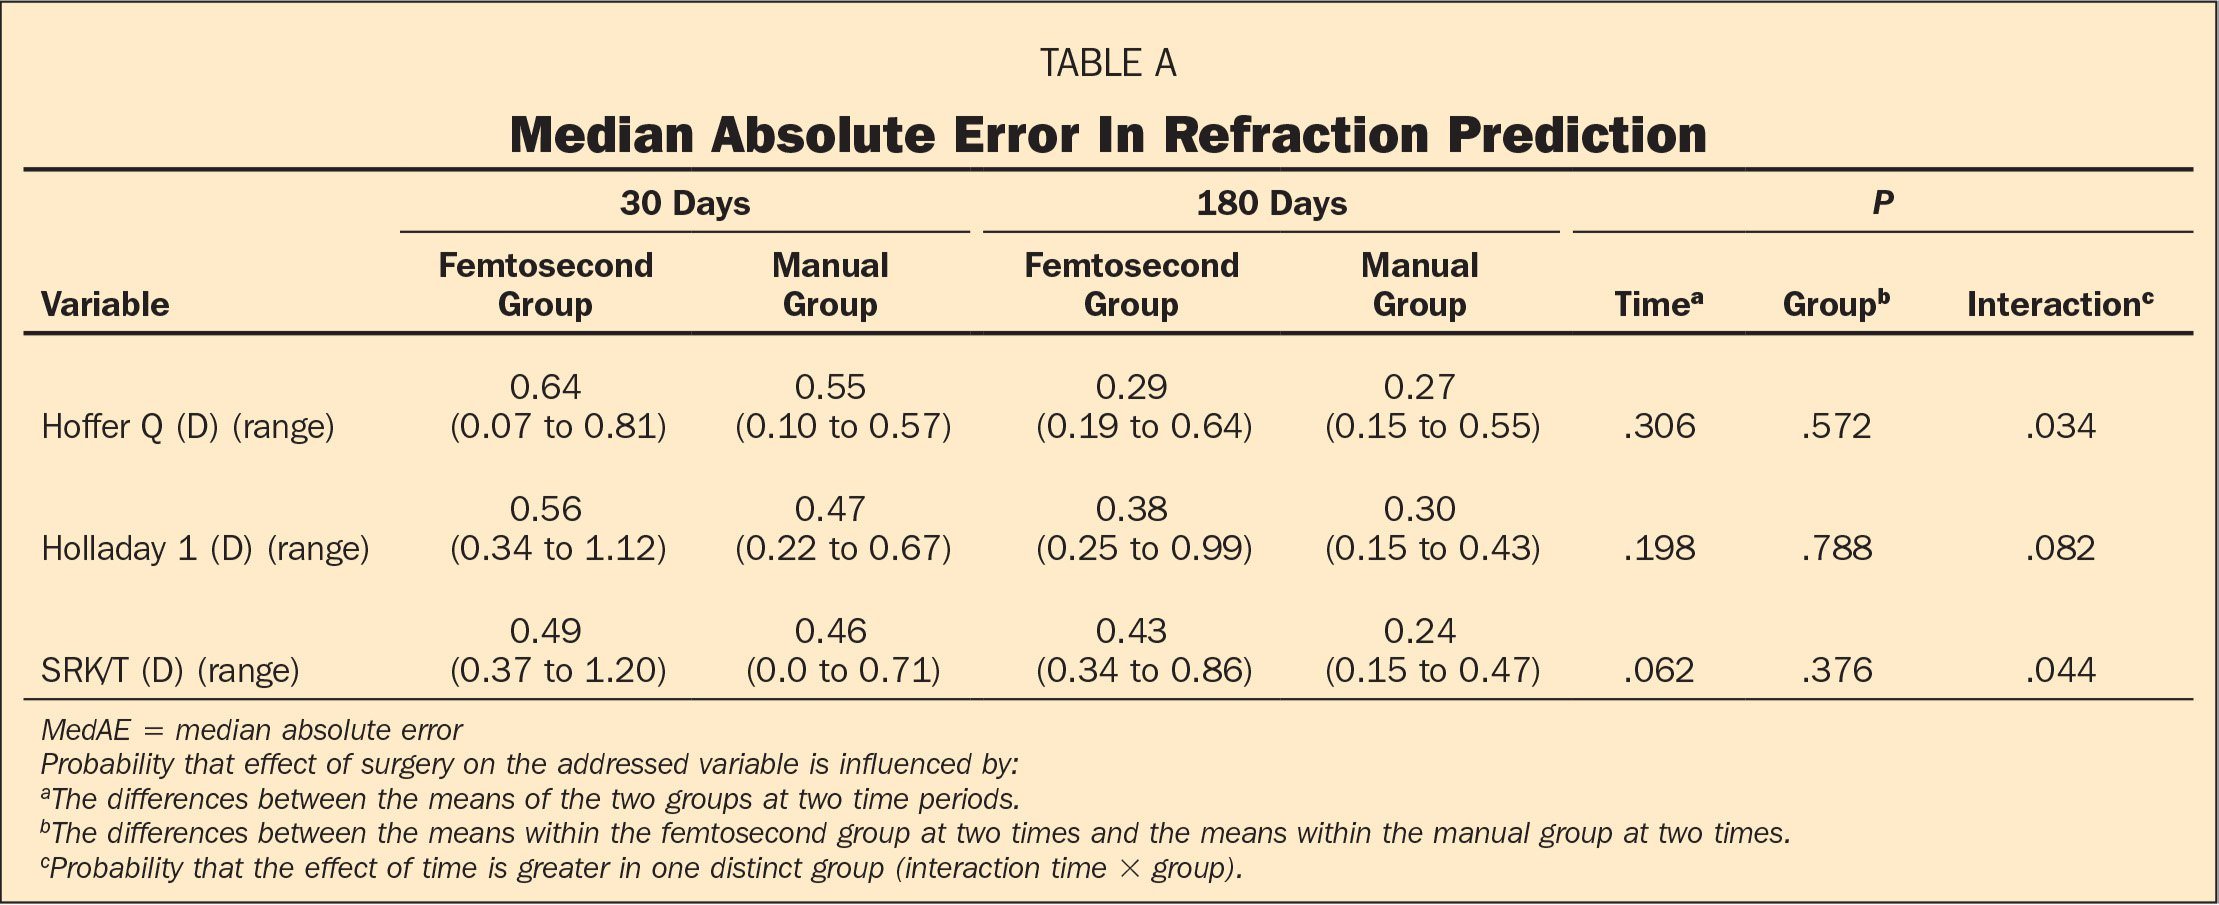 Median Absolute Error In Refraction Prediction